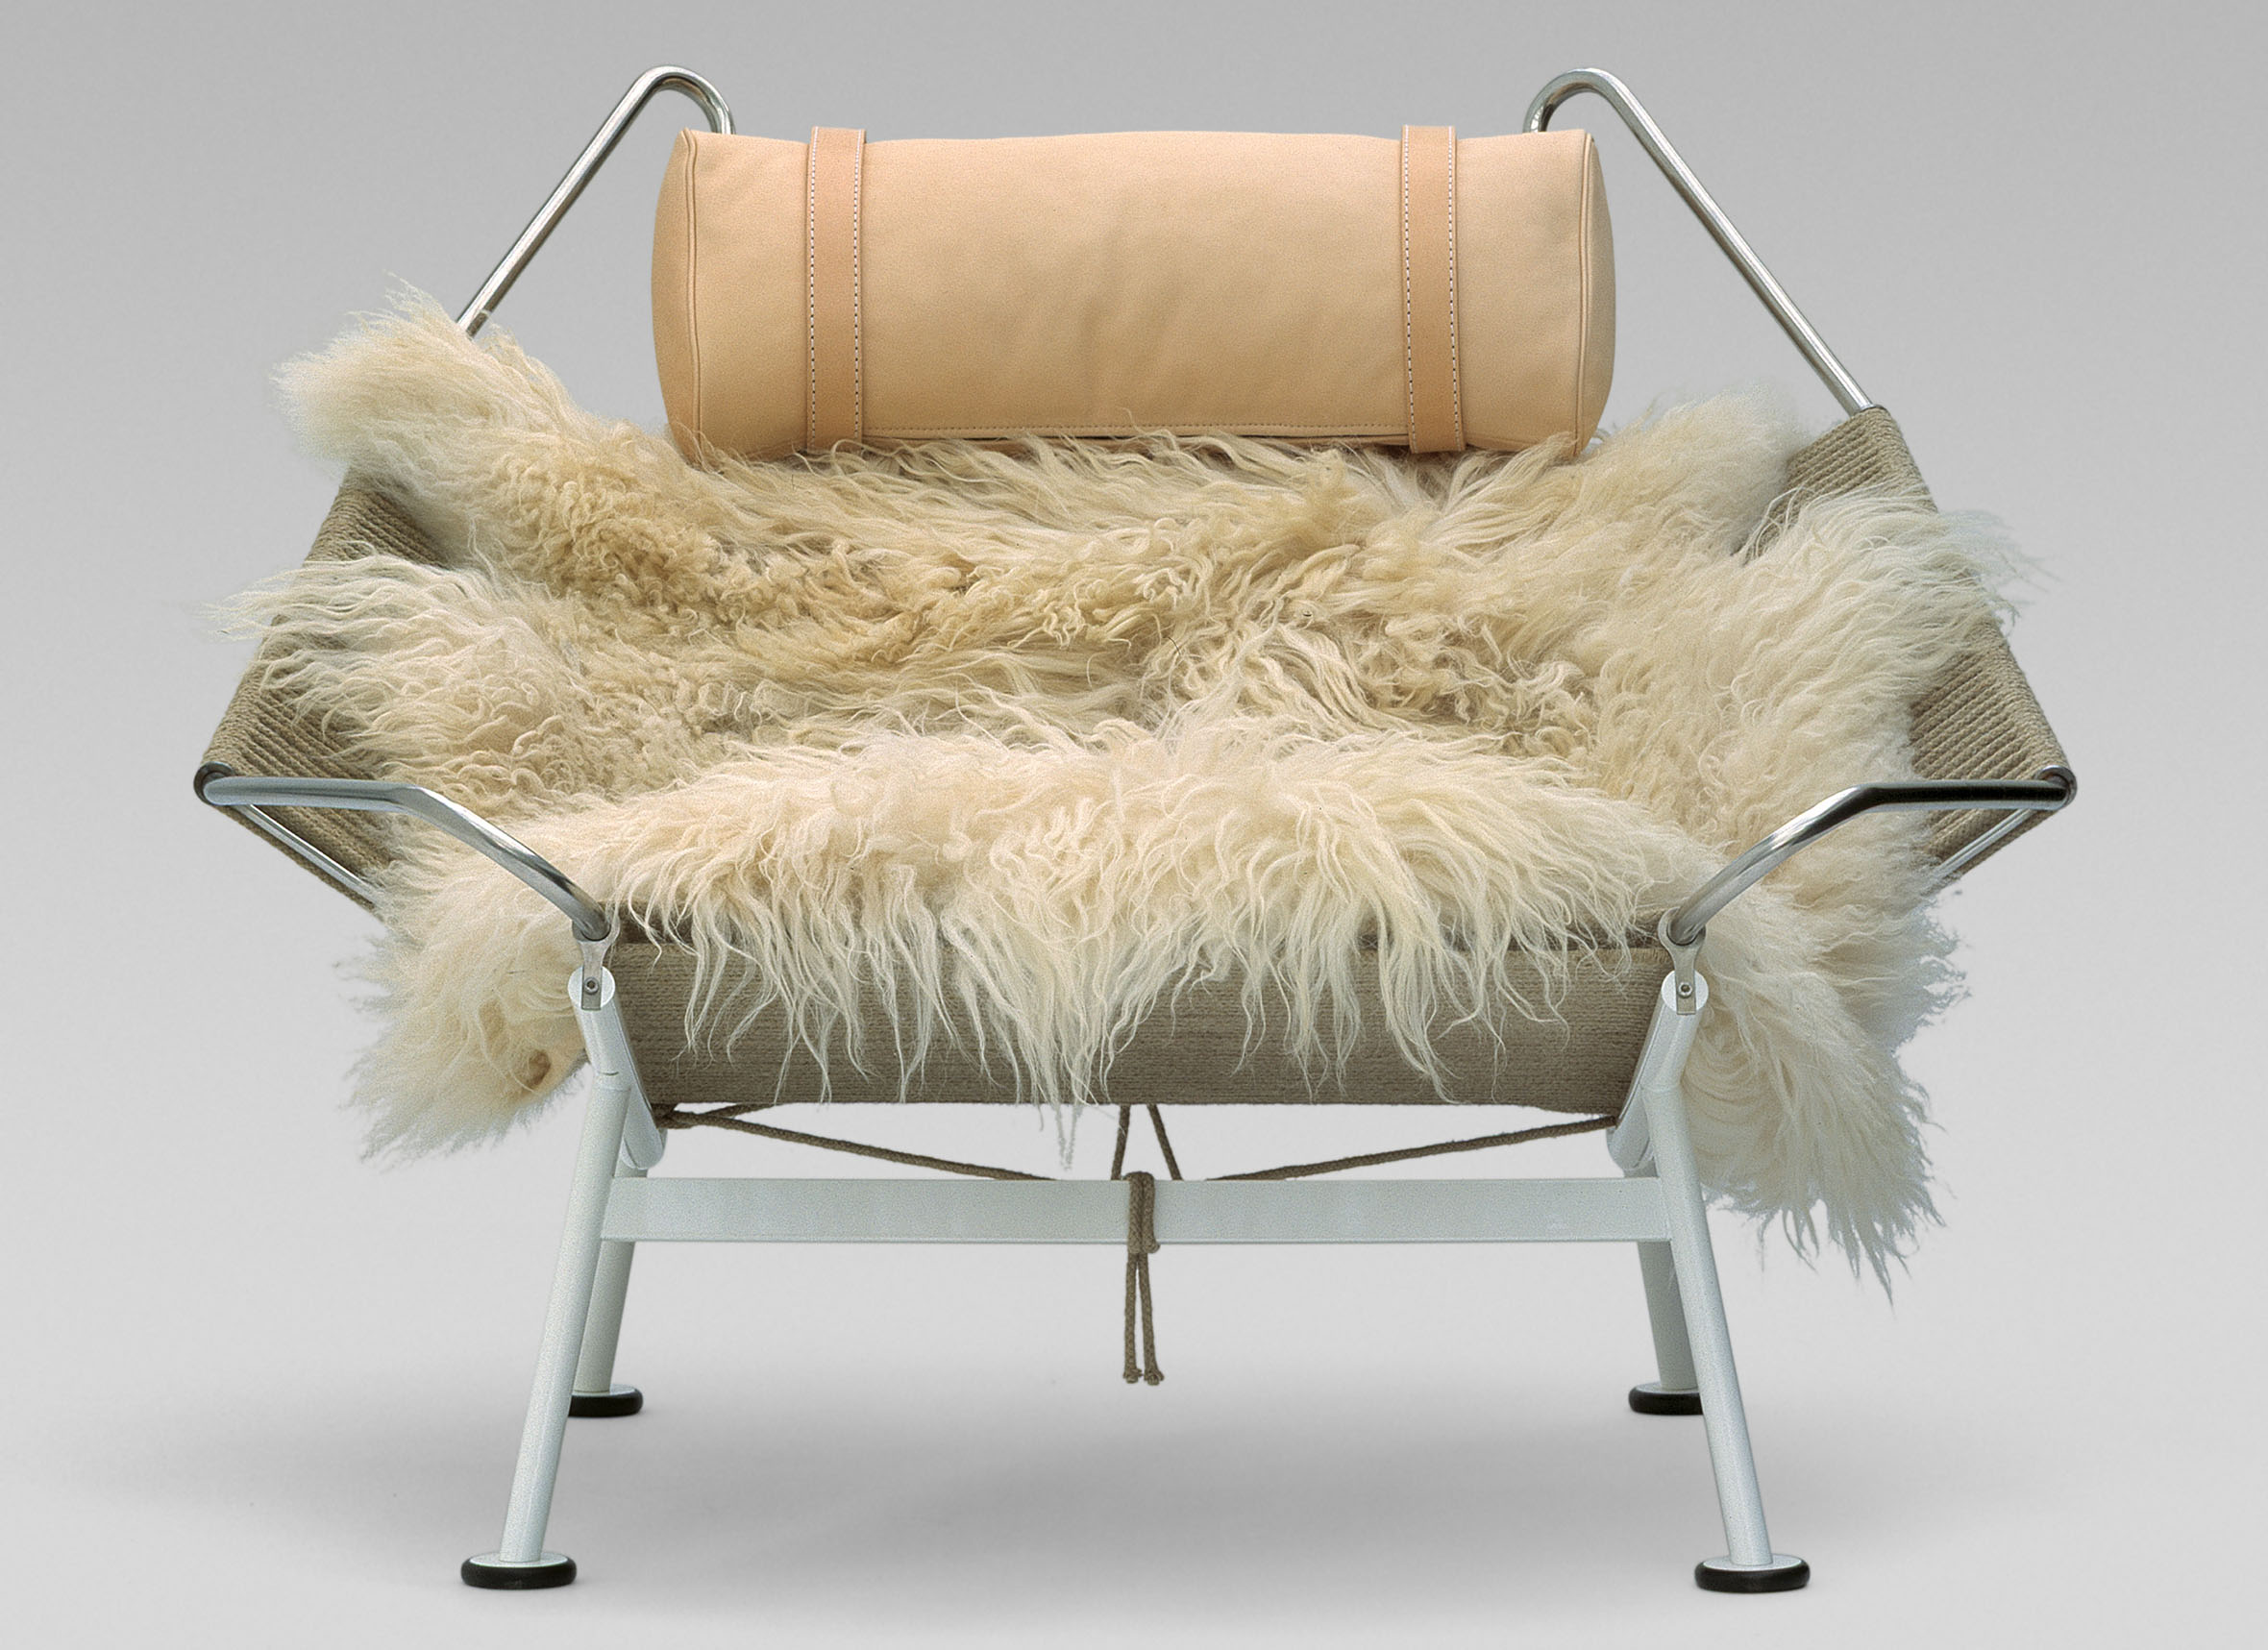 Polsterei Ox and Bear modernes Sofa